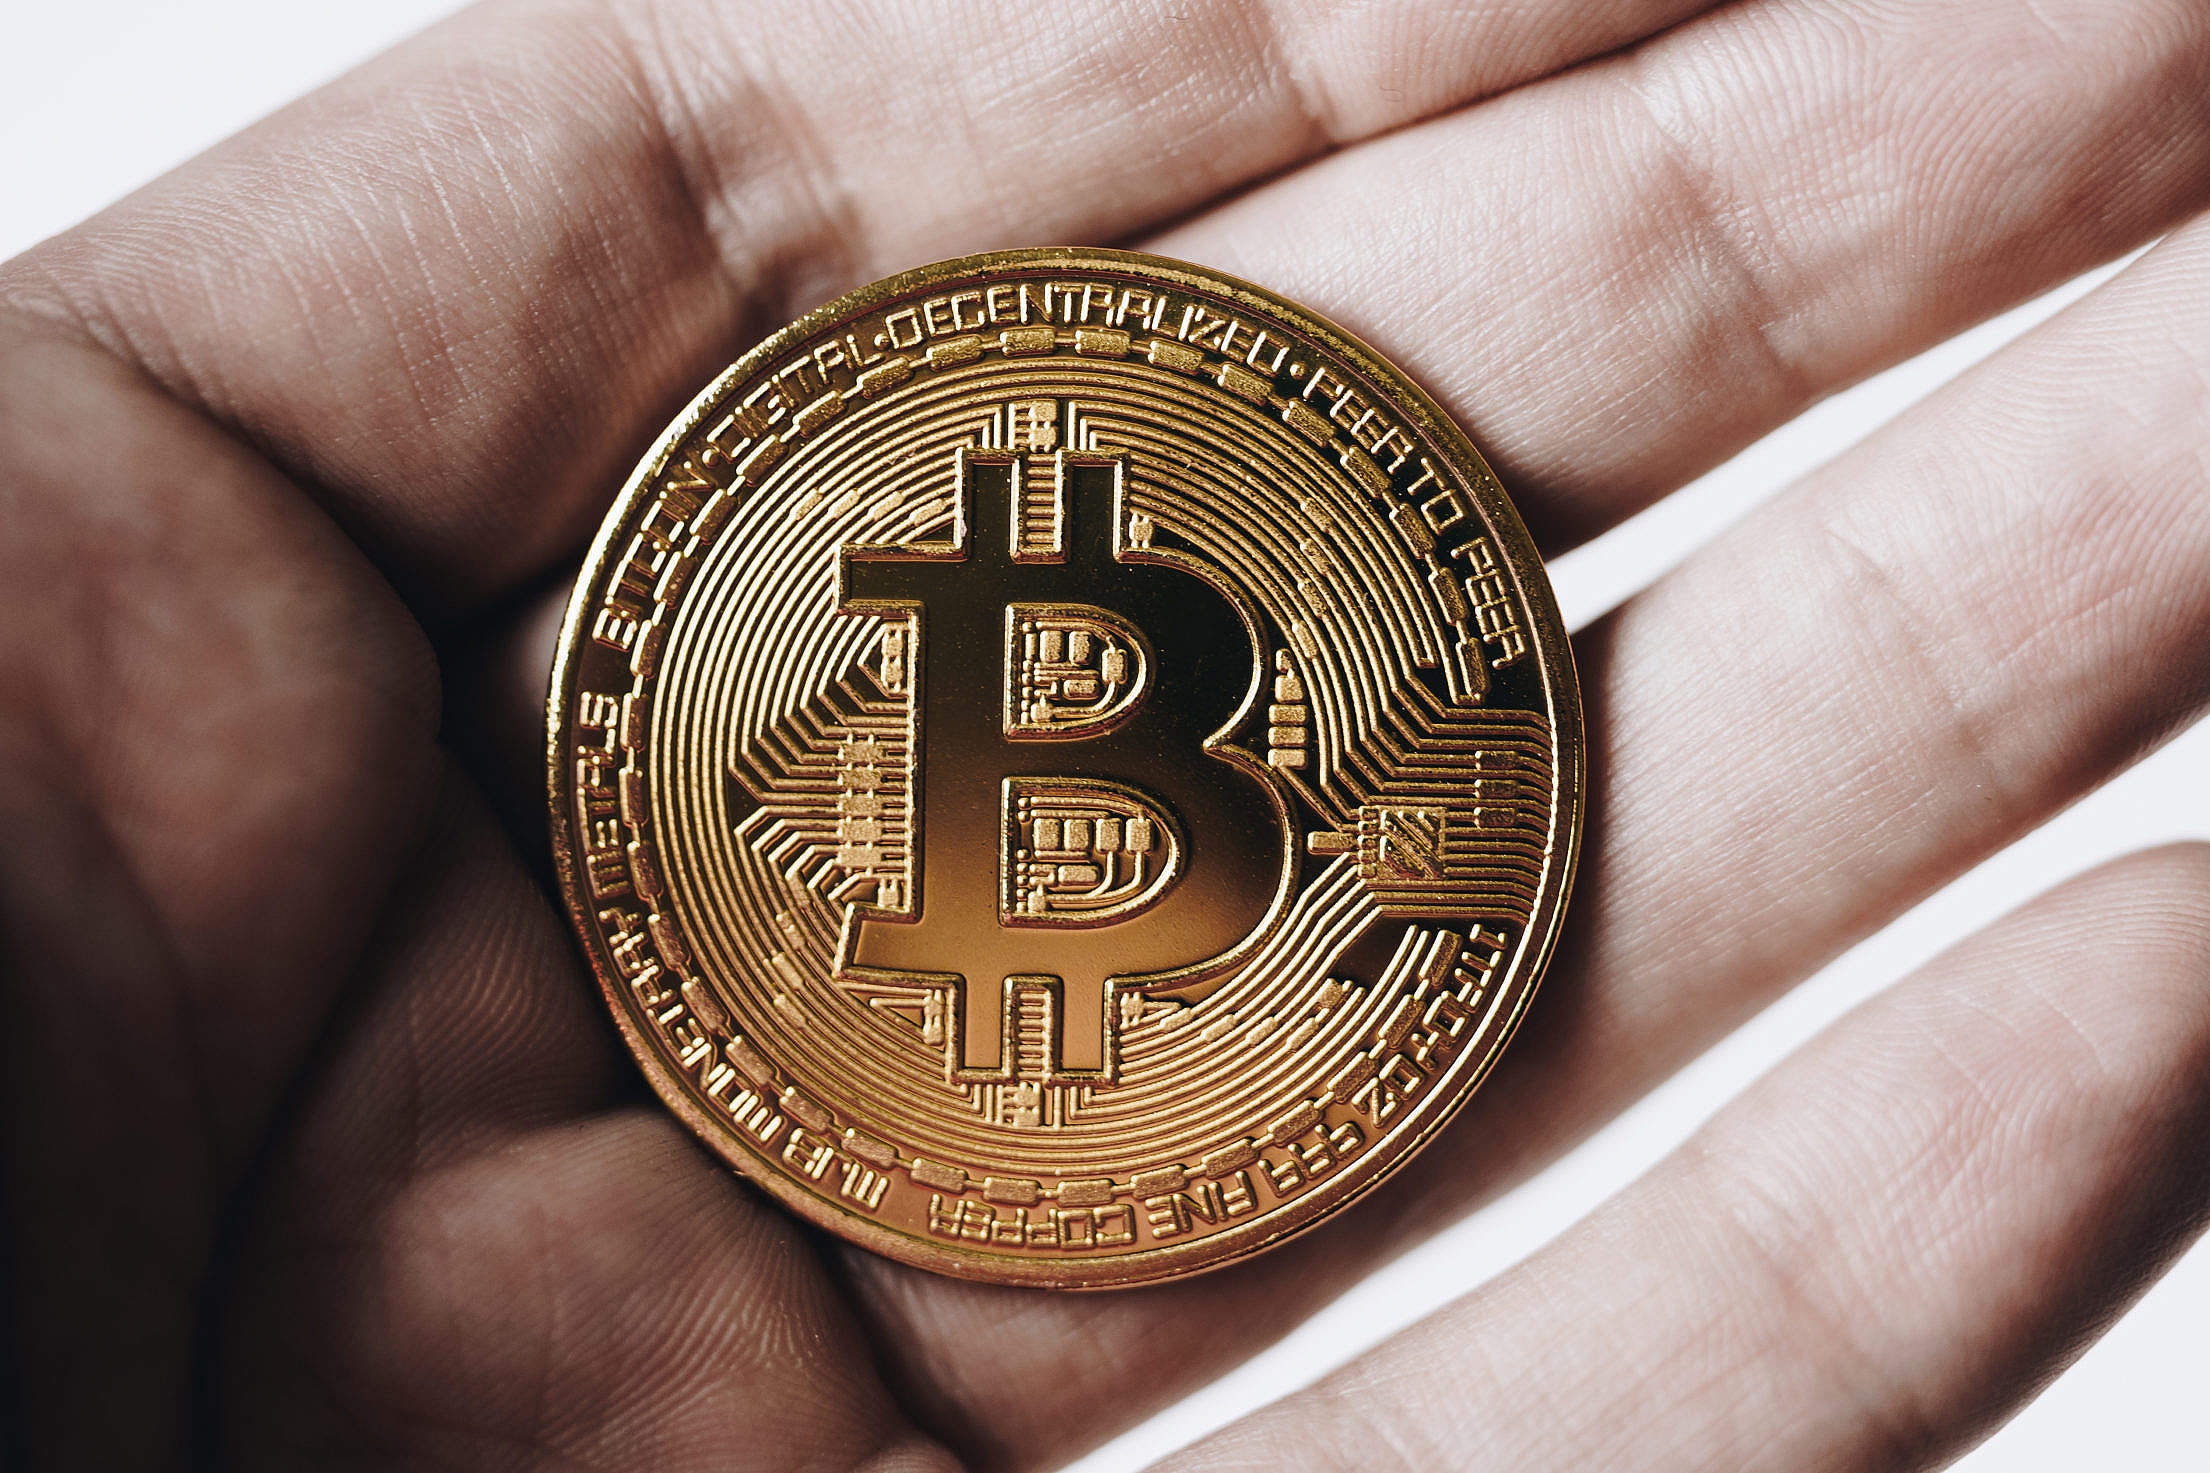 Bitcoin in Hand Free Stock Photo